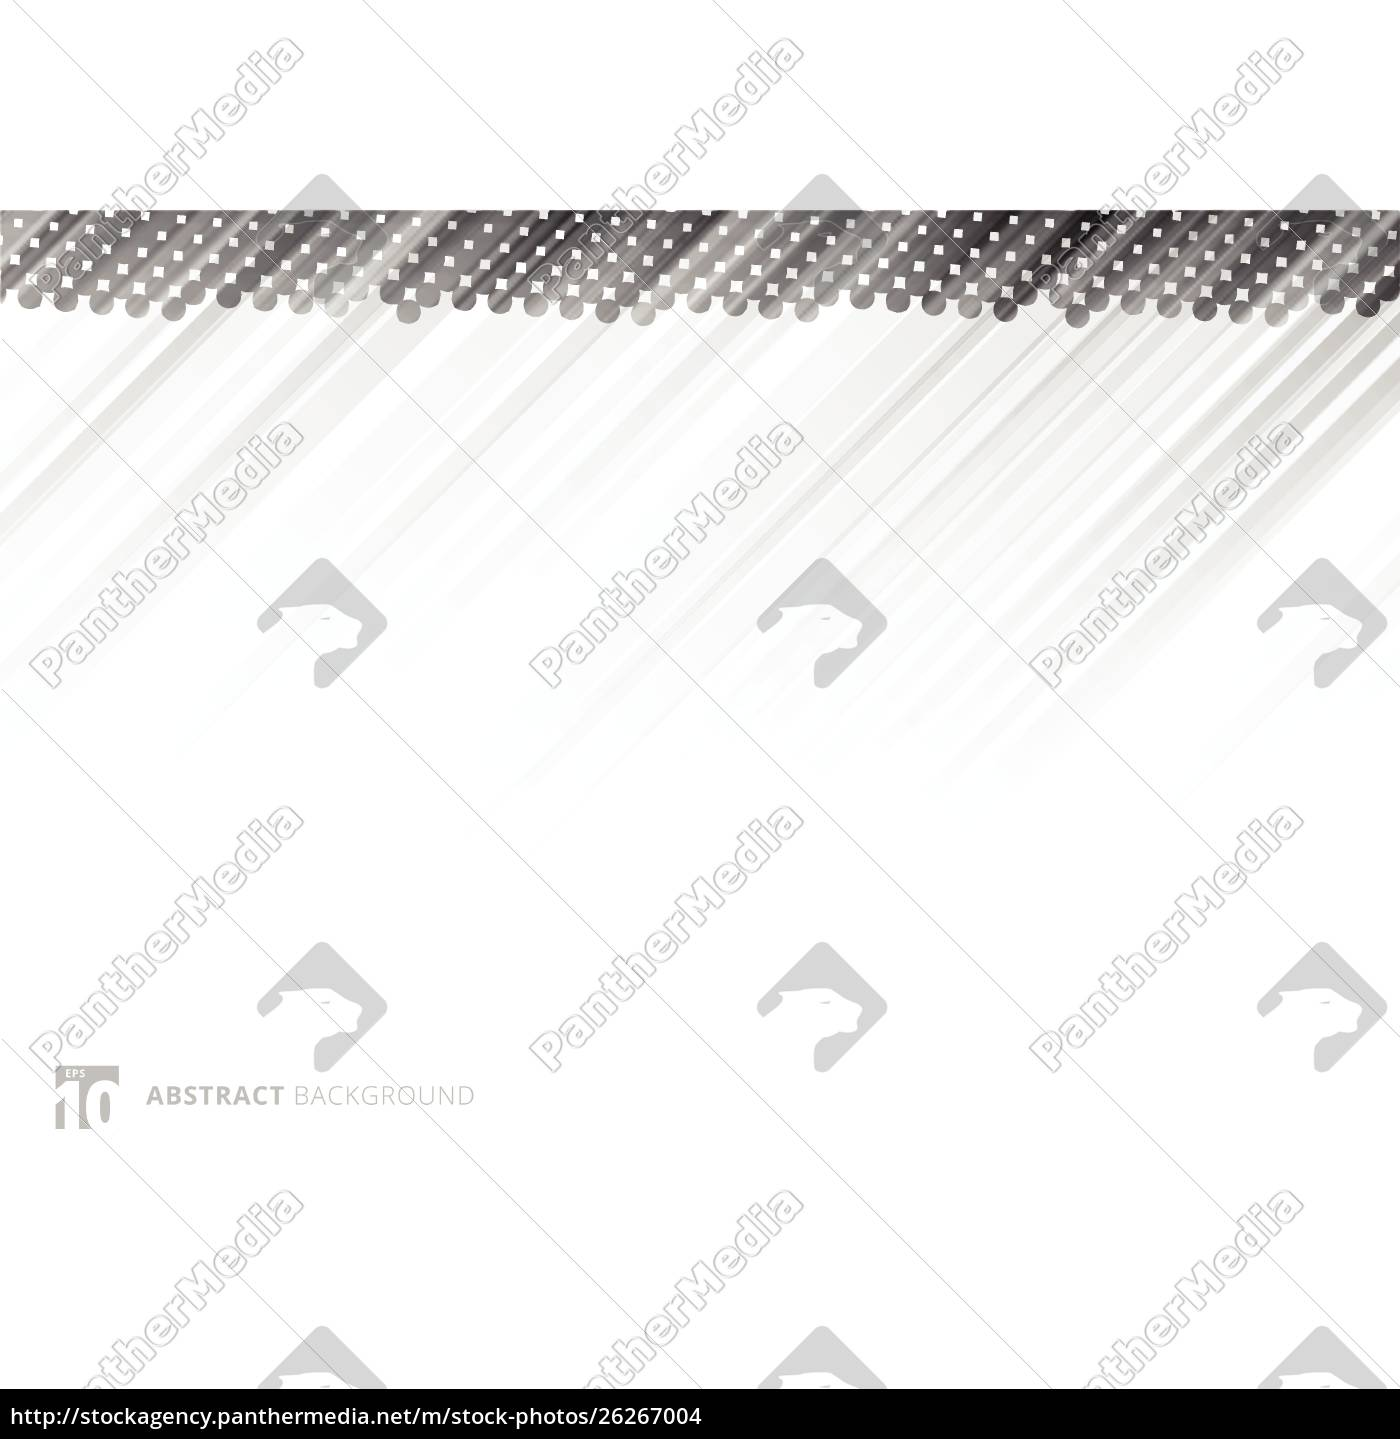 gray, abstract, diagonal, lines, background, technology - 26267004